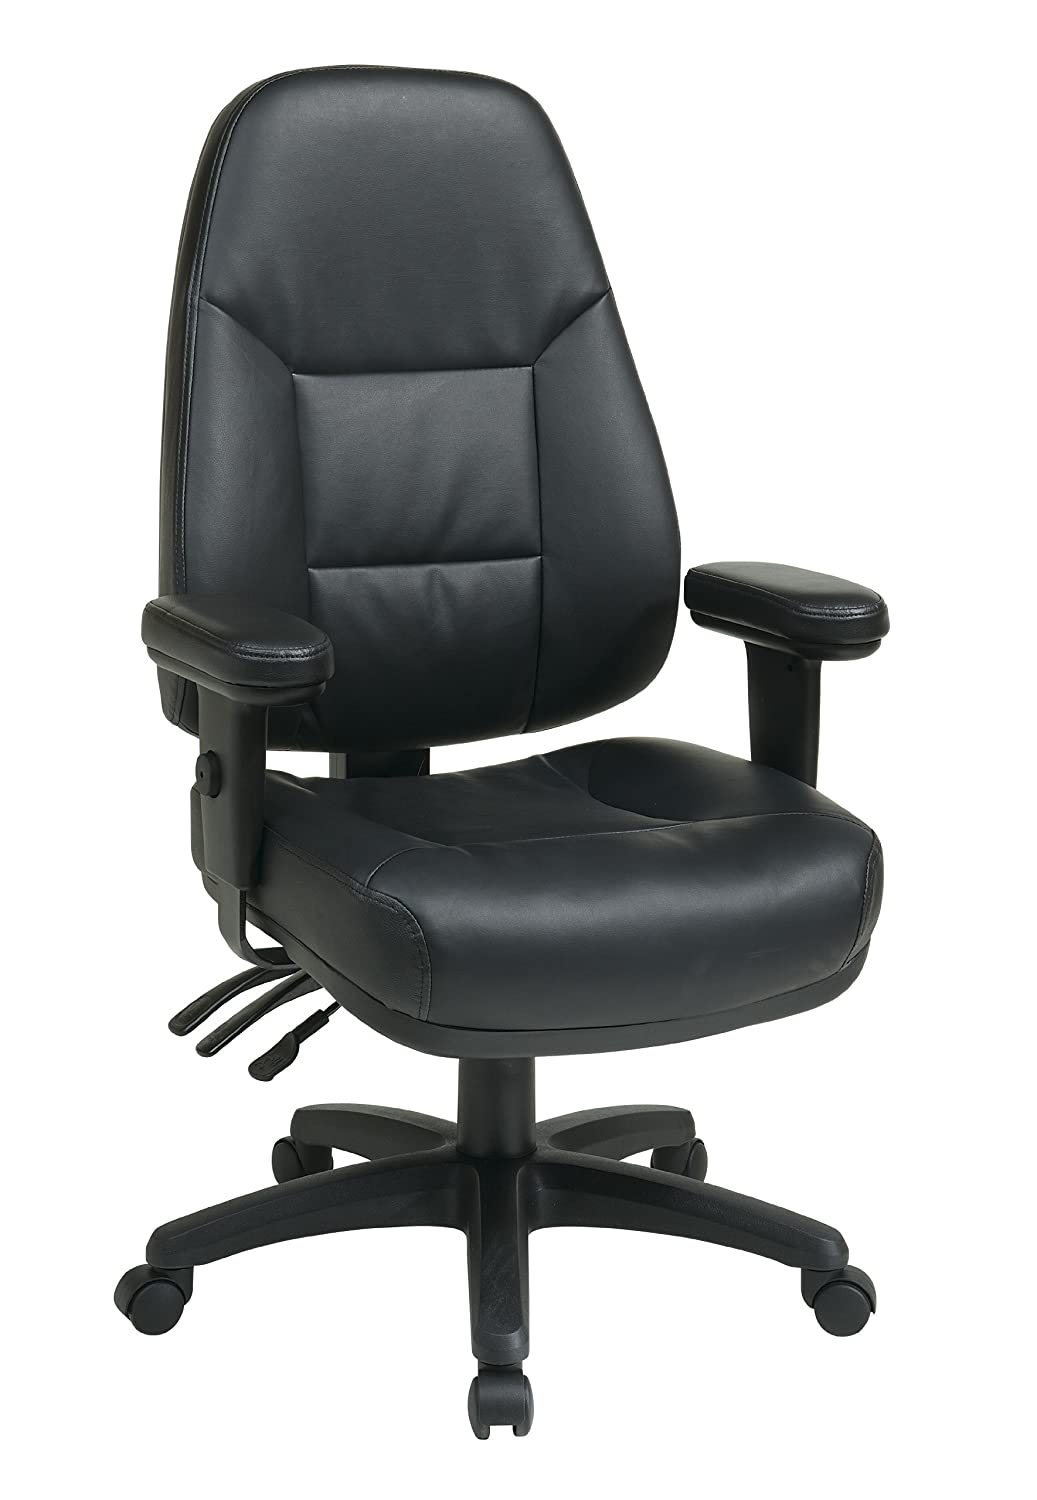 Office Star Professional Dual Function Ergonomic High Back Eco Leather Office Chair, Black